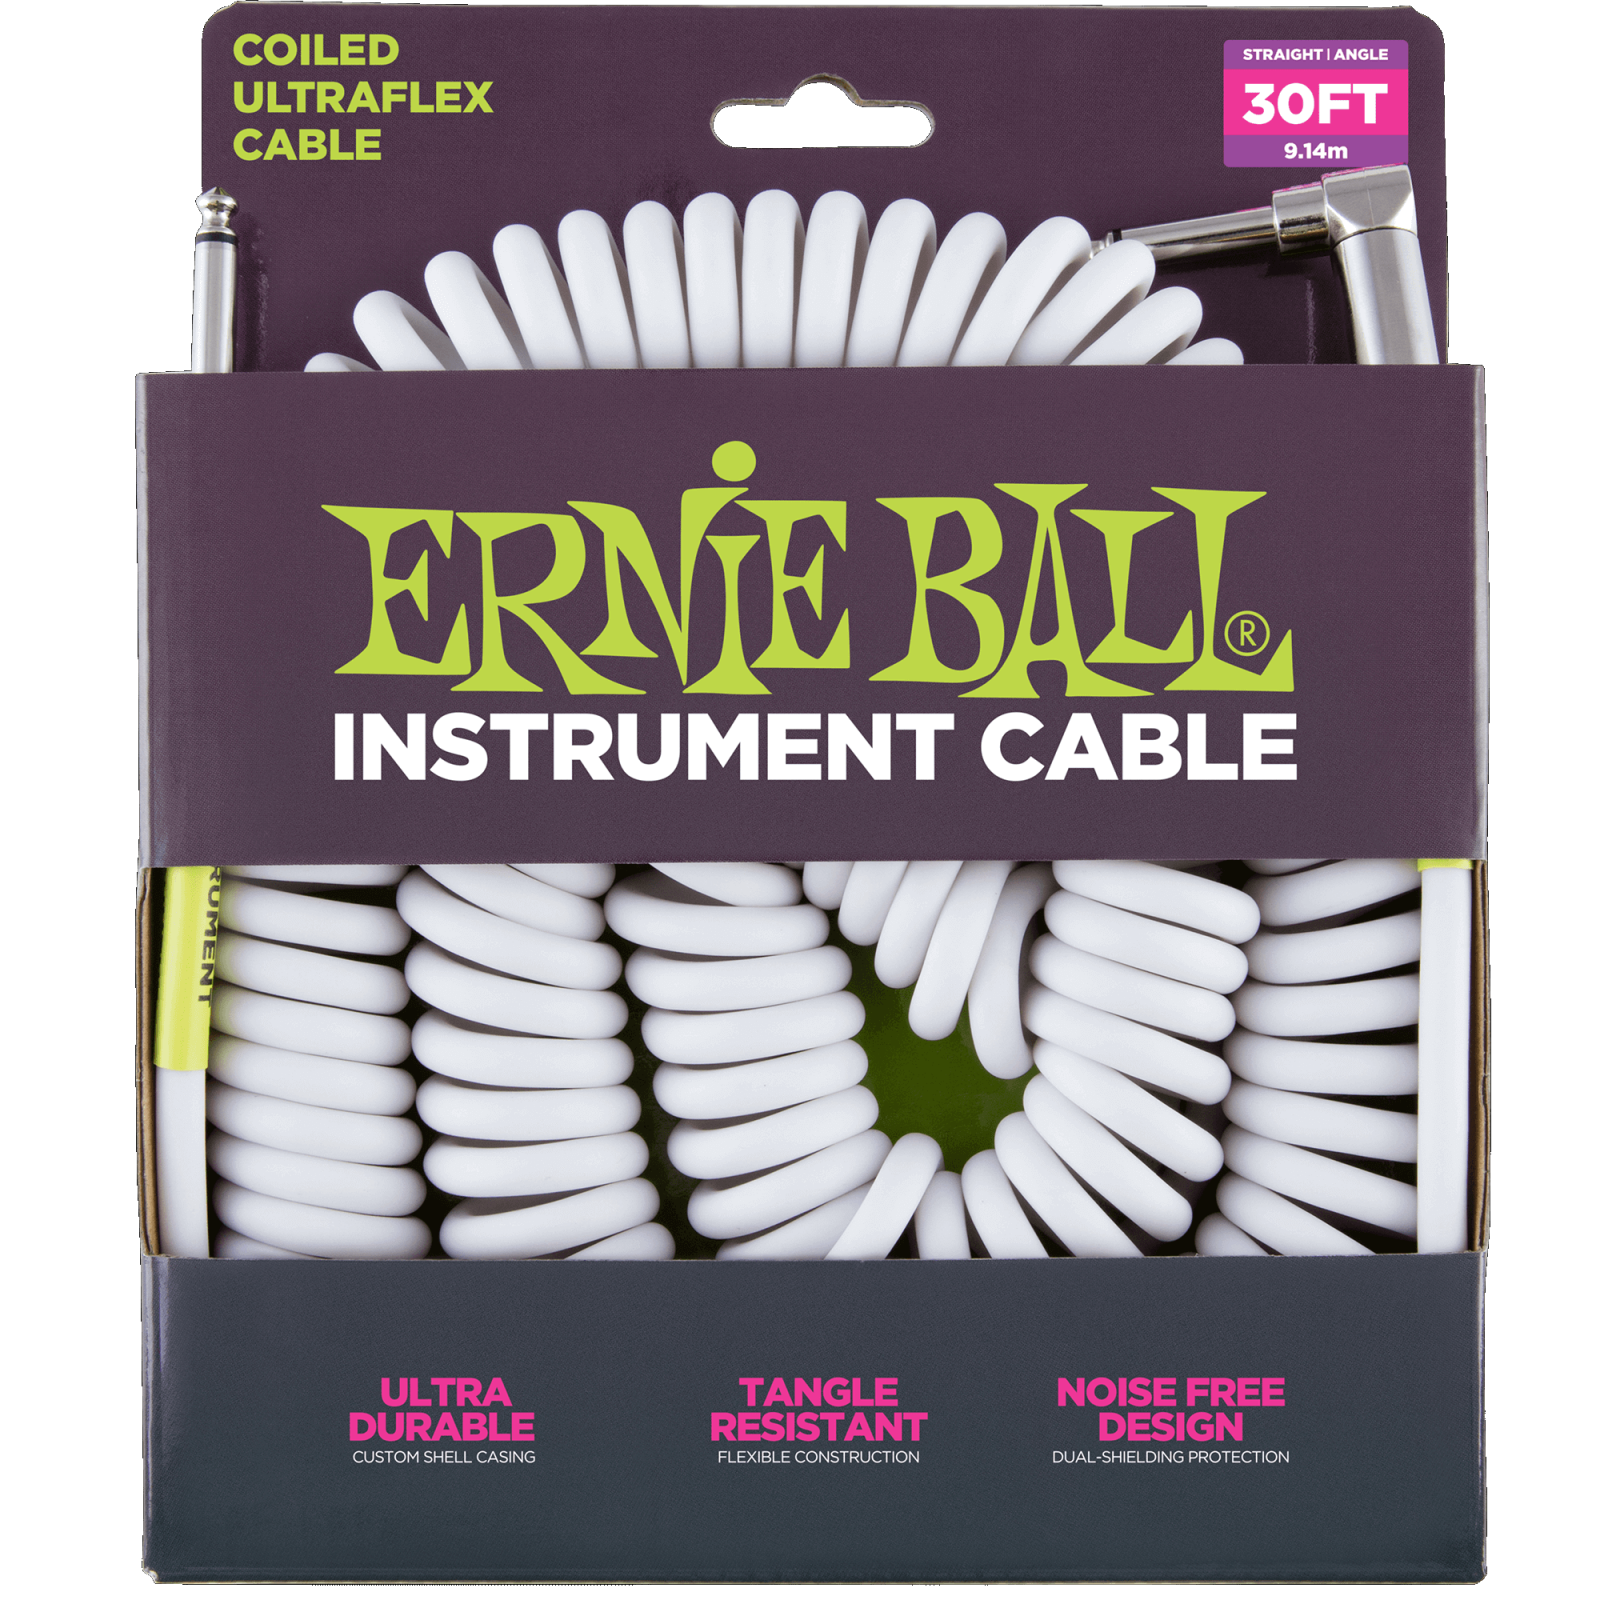 Ernie Ball Coiled Ultraflex Instrument Cable 30ft